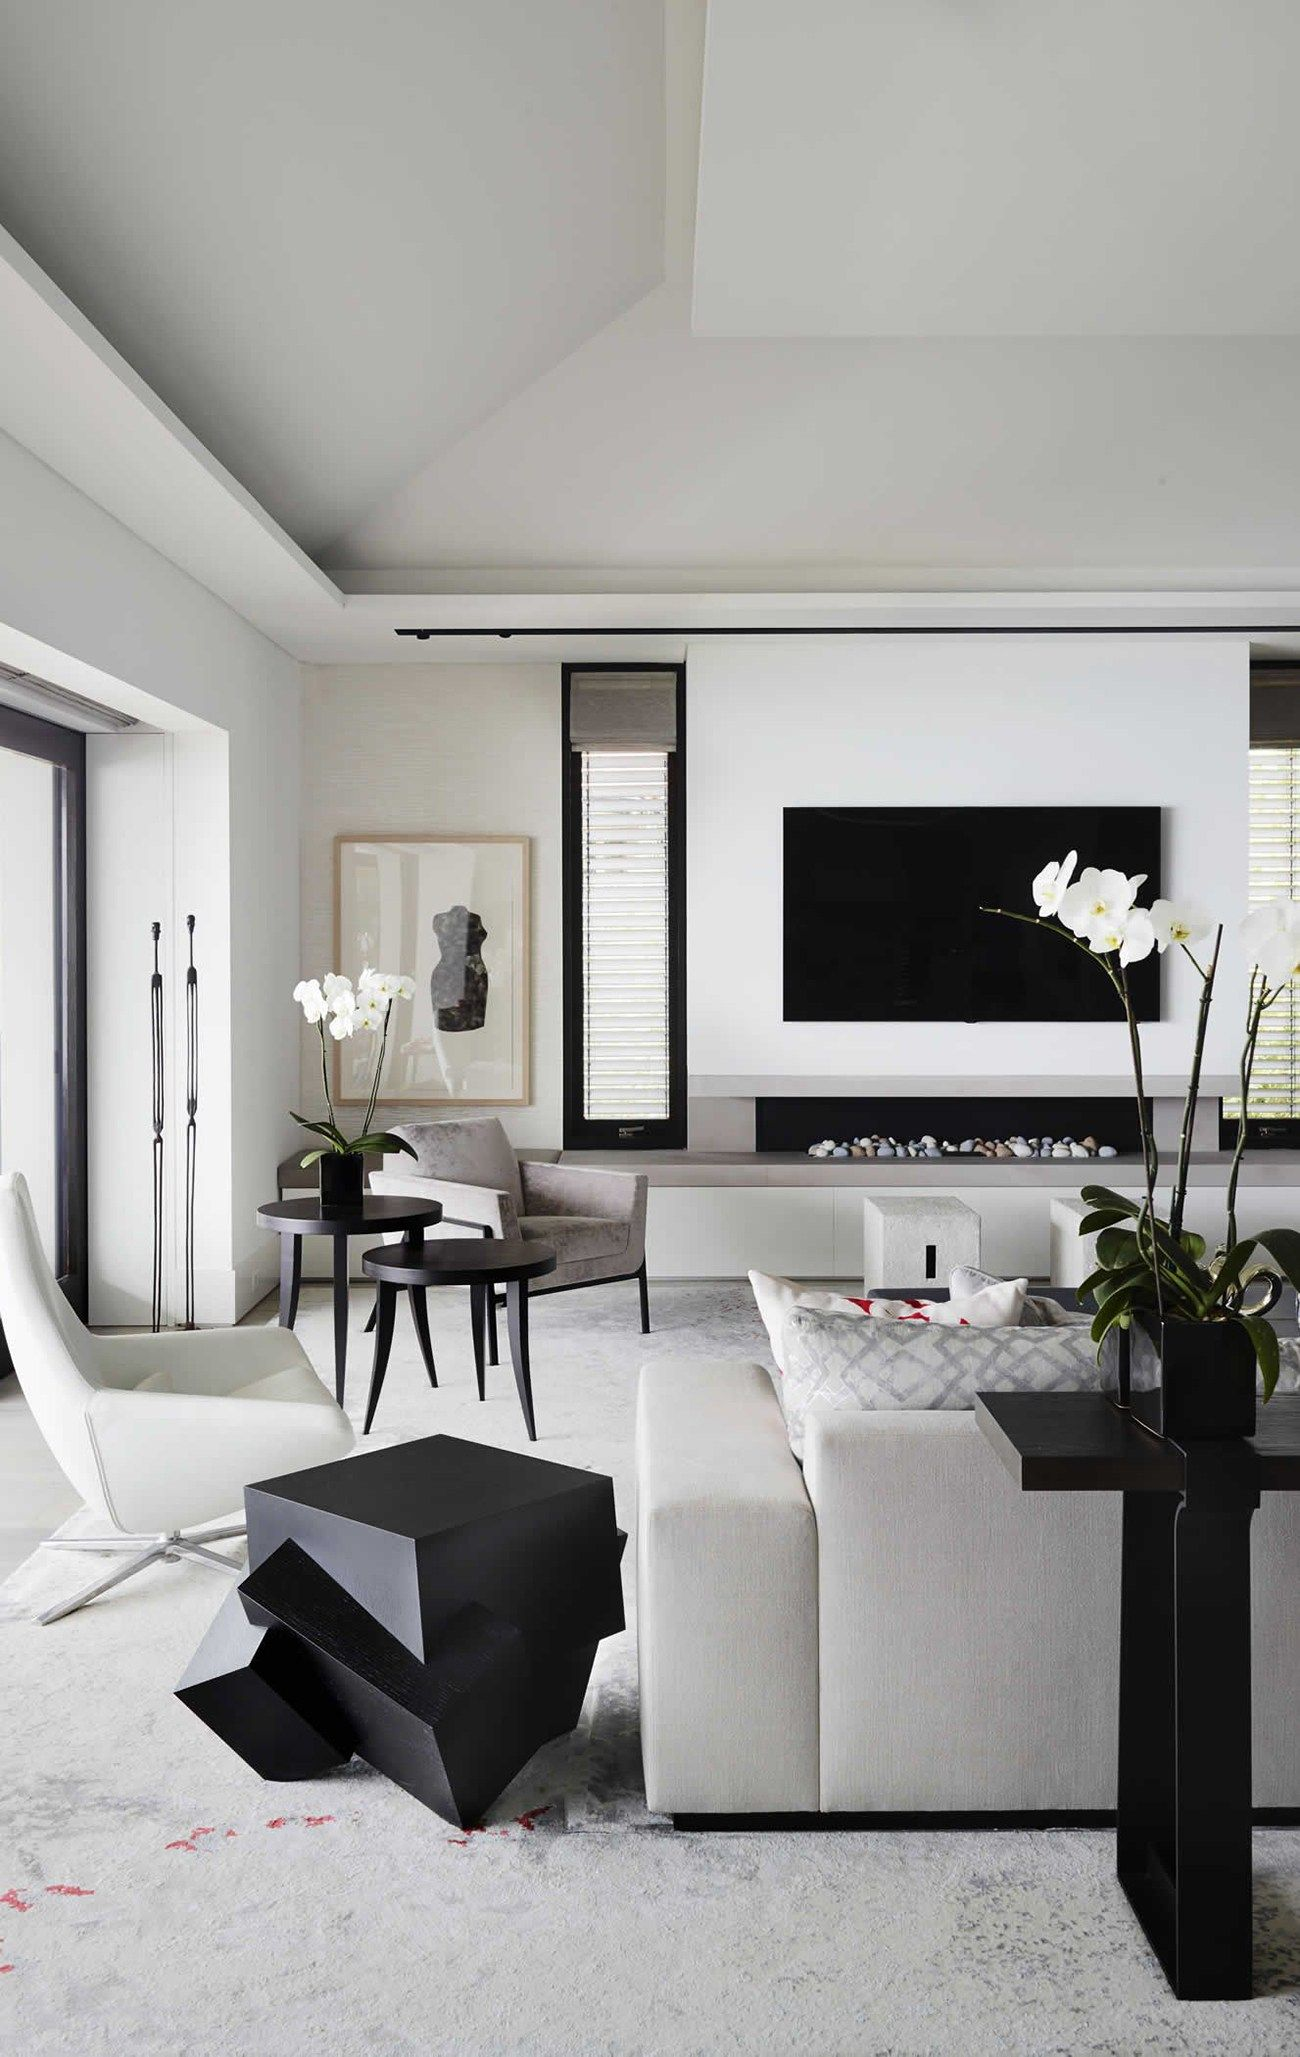 70 Decorating with White Ideas for 2021 | White Rooms ...